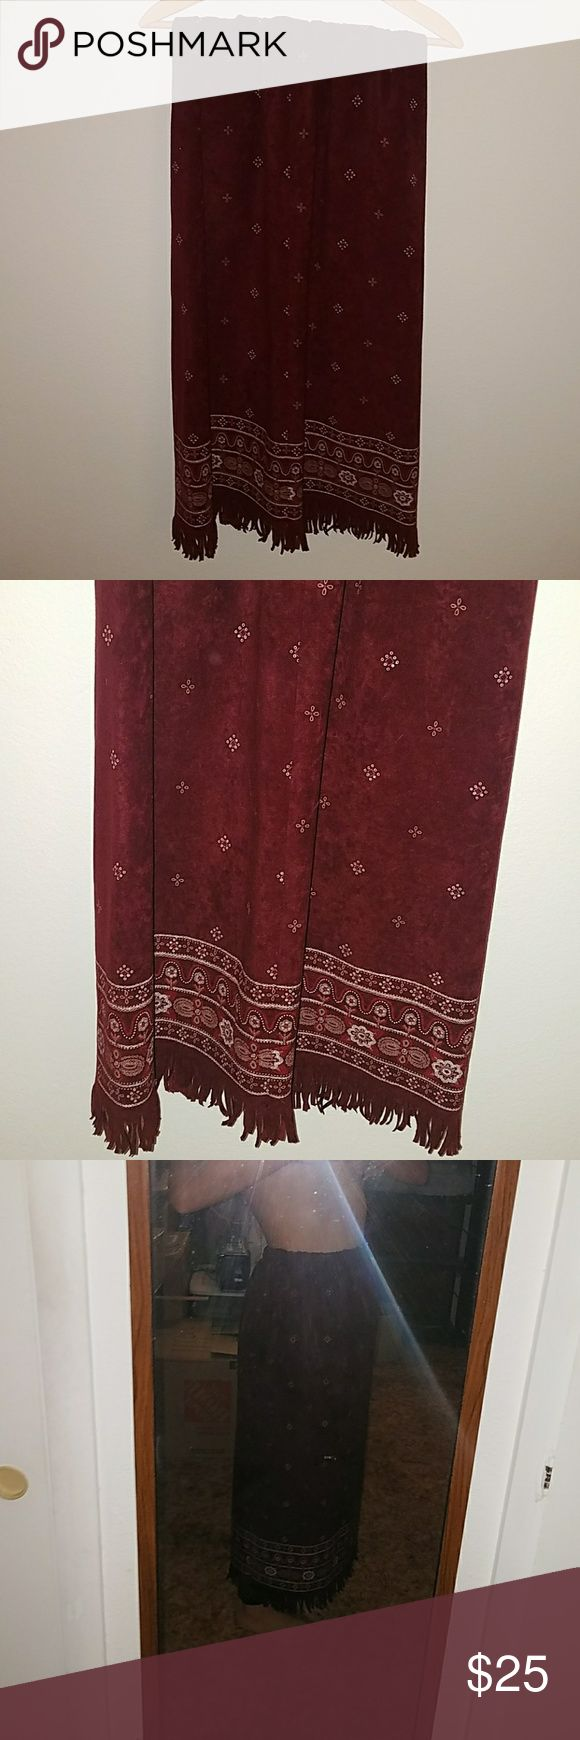 Hippie Gypsy Boho Gypsy Sisters Velvet skirt Bono Gypsy Sisters native American Inspired crushed velvet skirt, has a stretchy elastic waist band and can fit just about any size up to XL Boho Gypsy Sisters Skirts Maxi